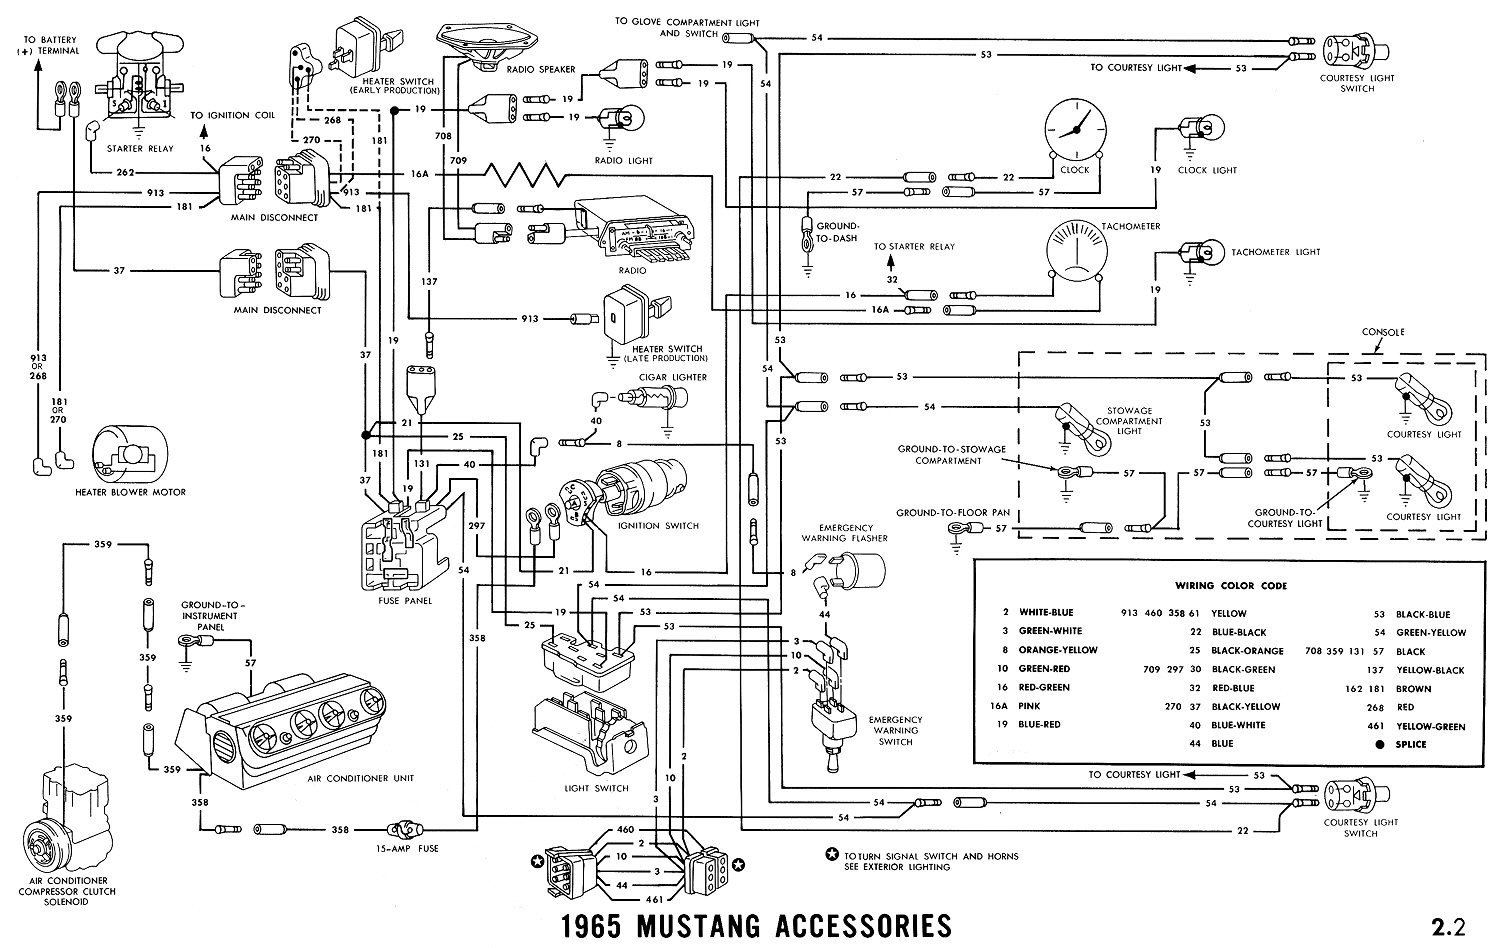 1965i blinker wiring diagram turn signal wiring schematic \u2022 free wiring 2000 ford ranger heater wiring diagram at gsmx.co